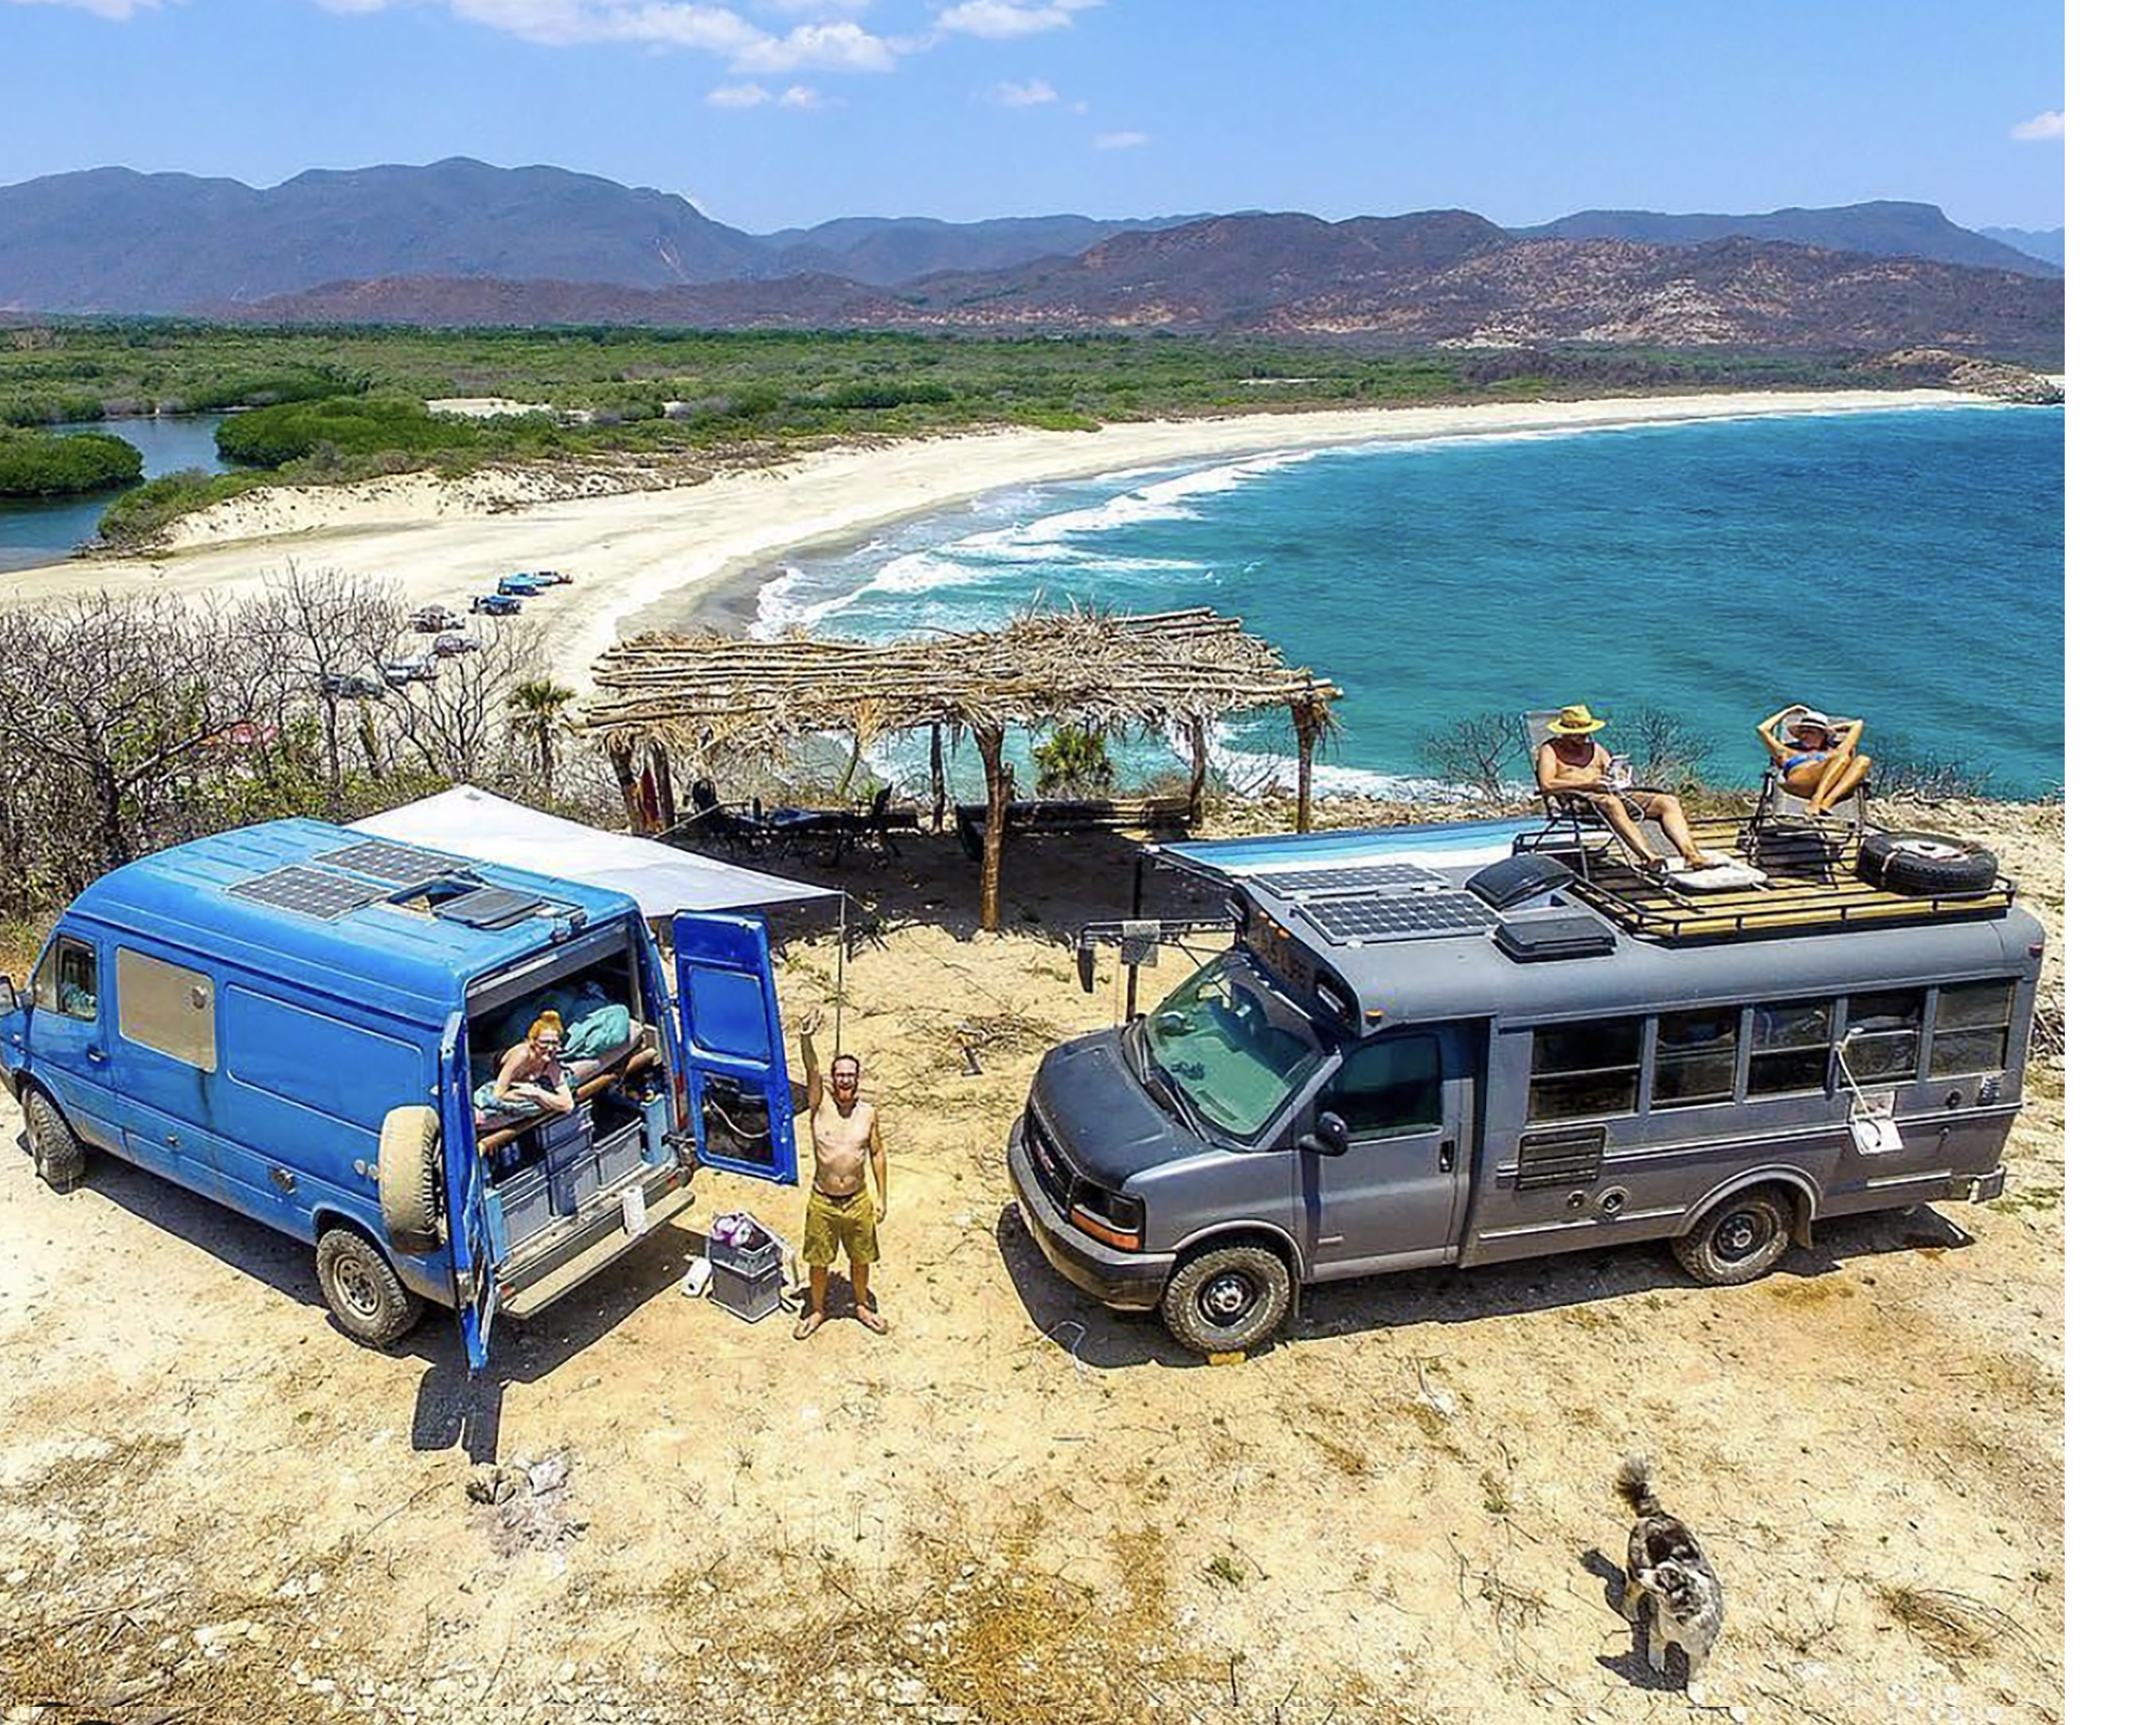 14_TINY_STOVE_MEXICO_MB_SPRINTER_VAN_FRIENDS